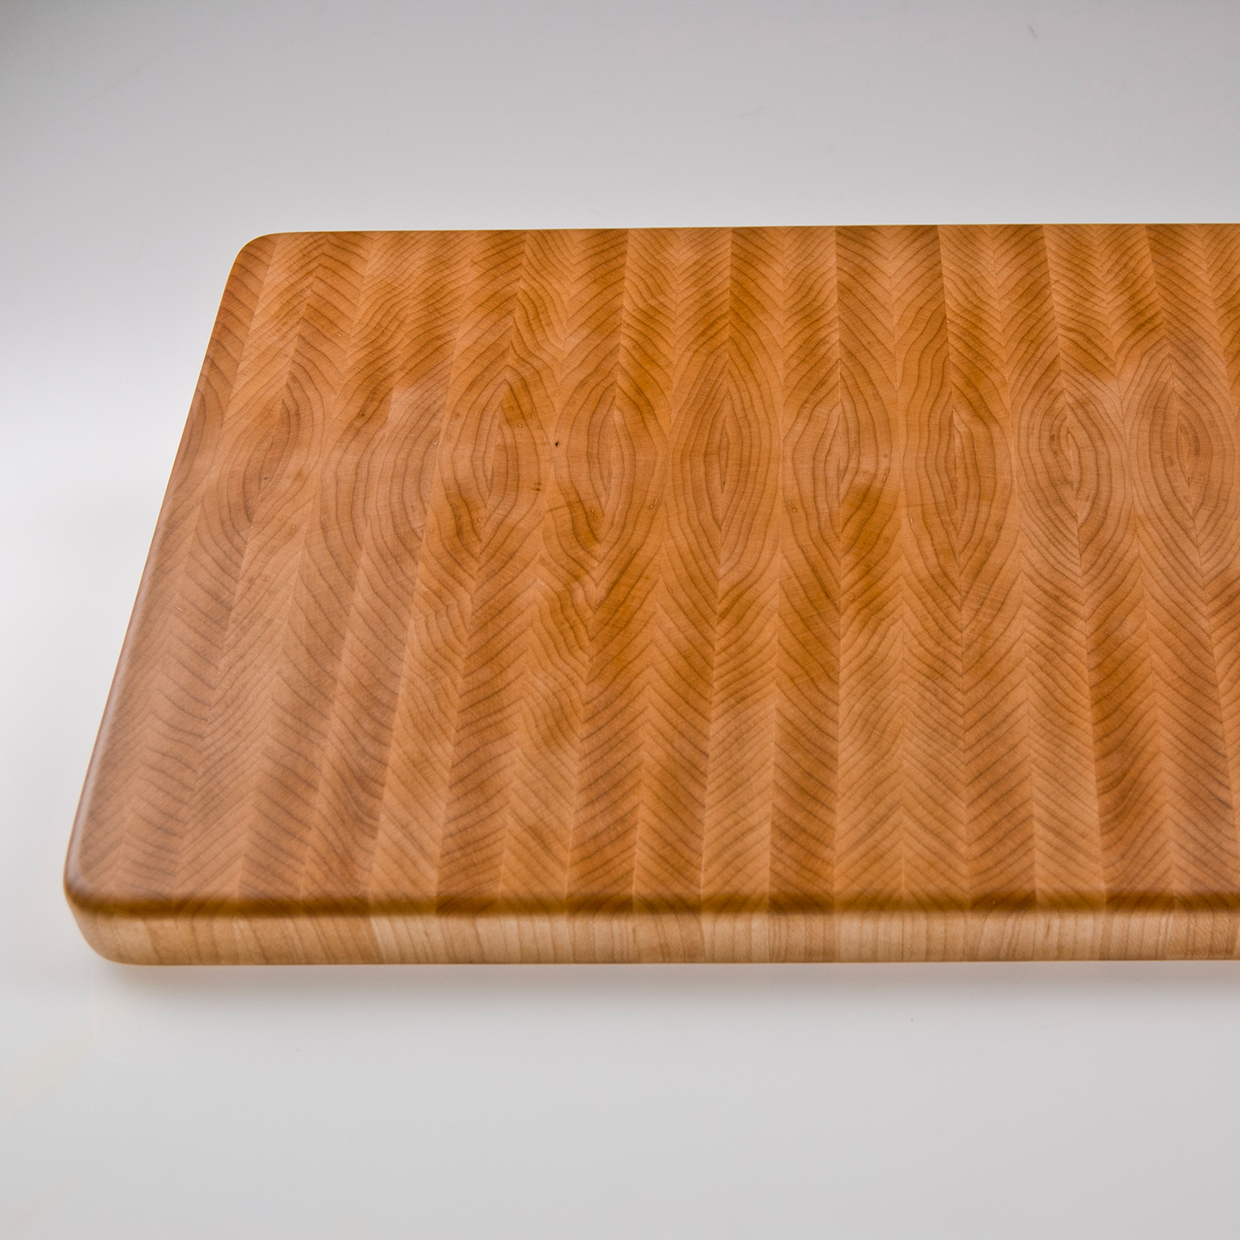 Maple cutting board.